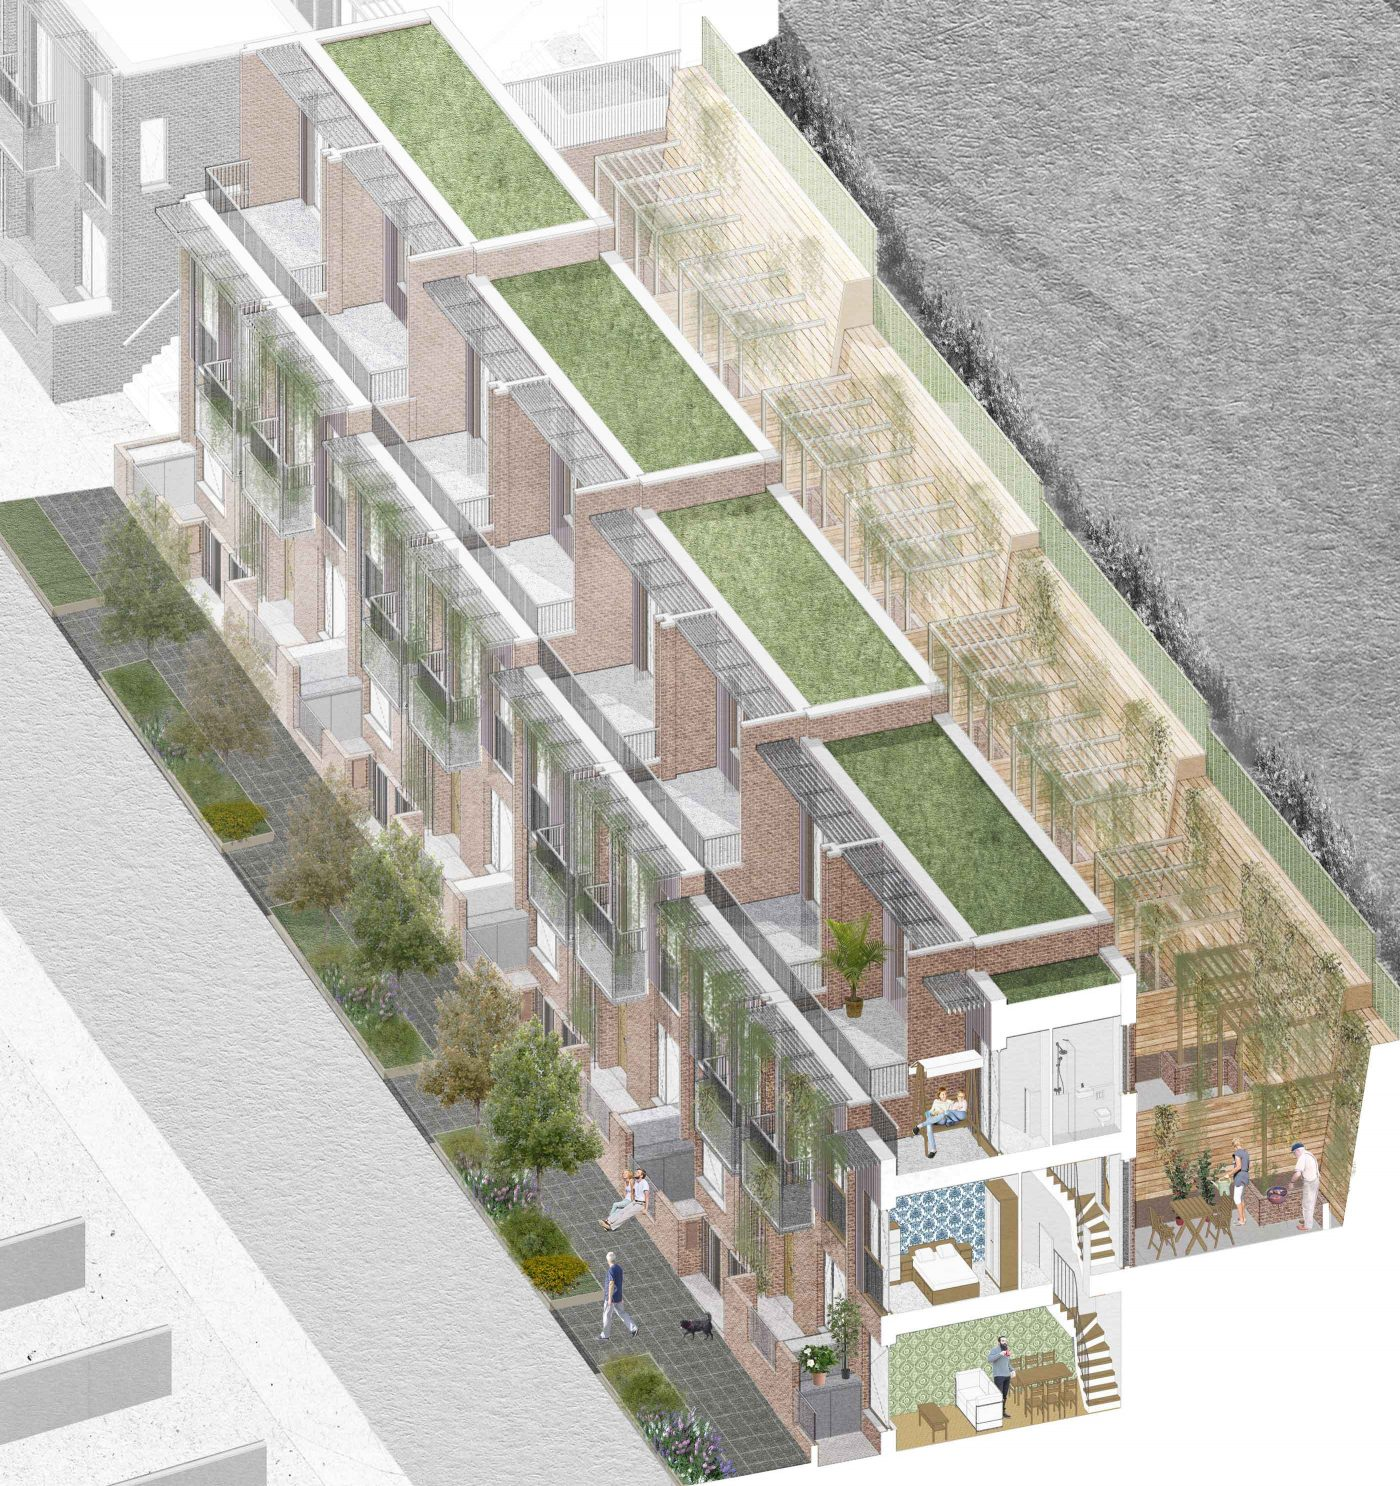 180703 Housing Design Awards Croydon